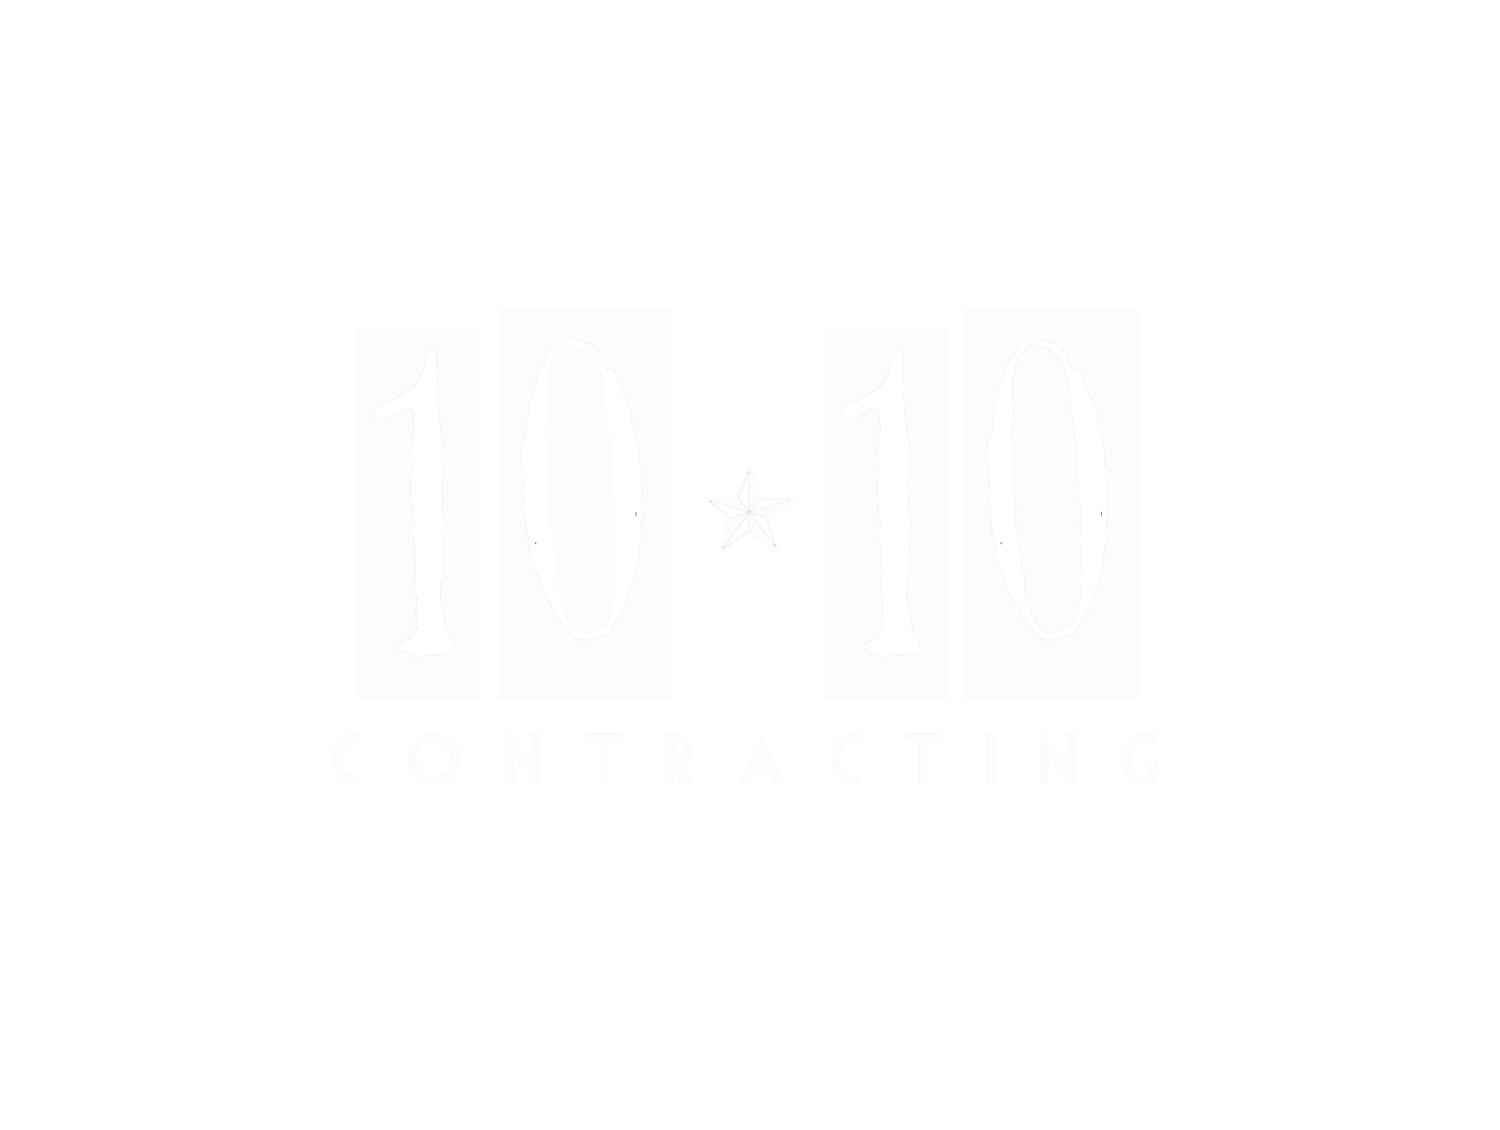 10.10 Contracting